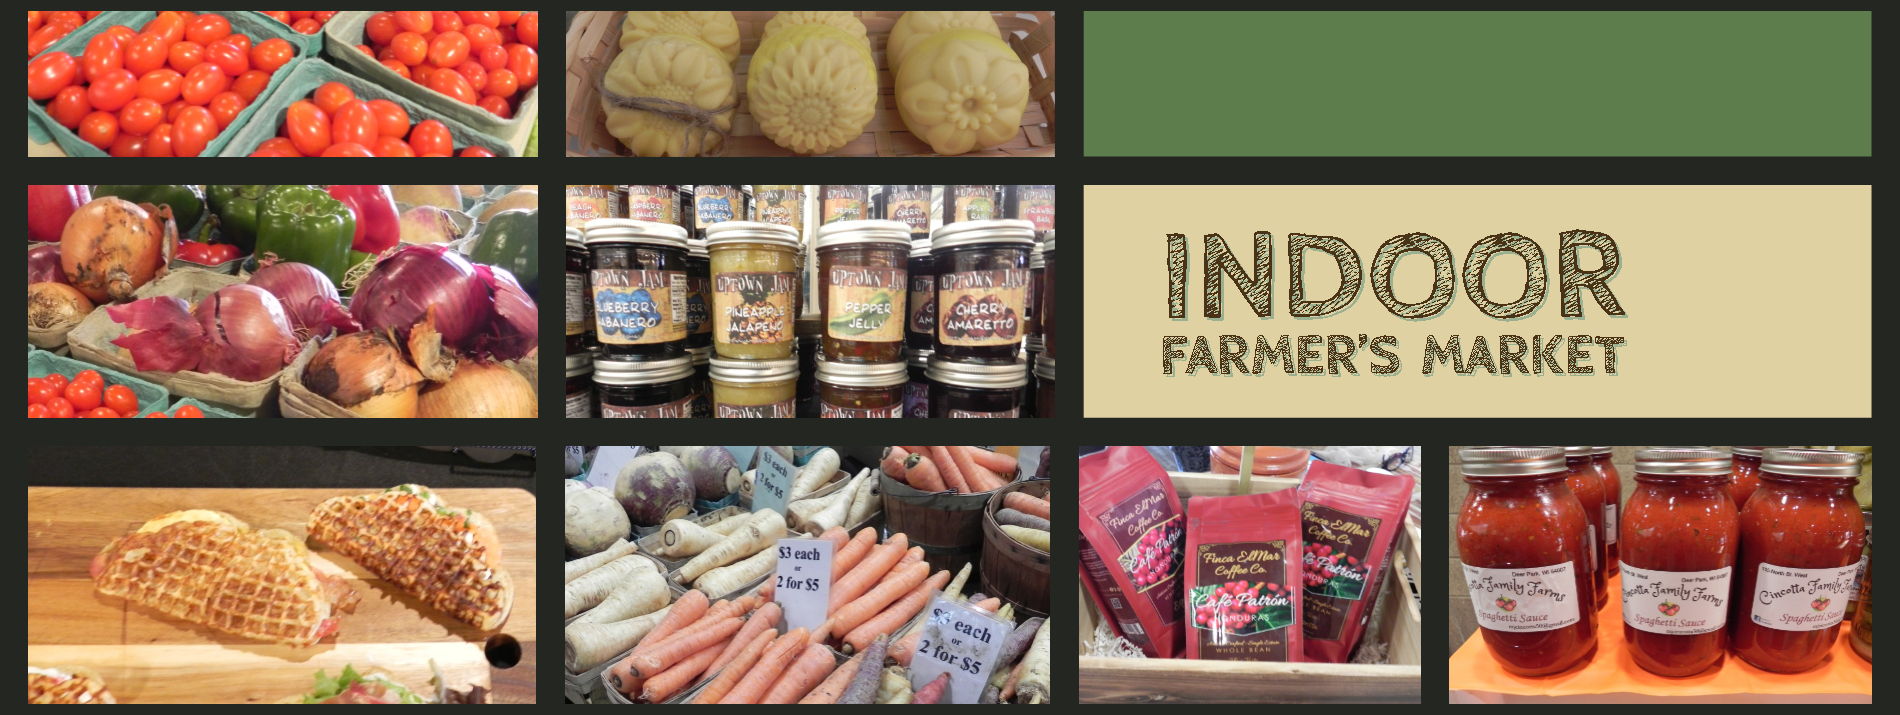 Indoor Farmers Market items